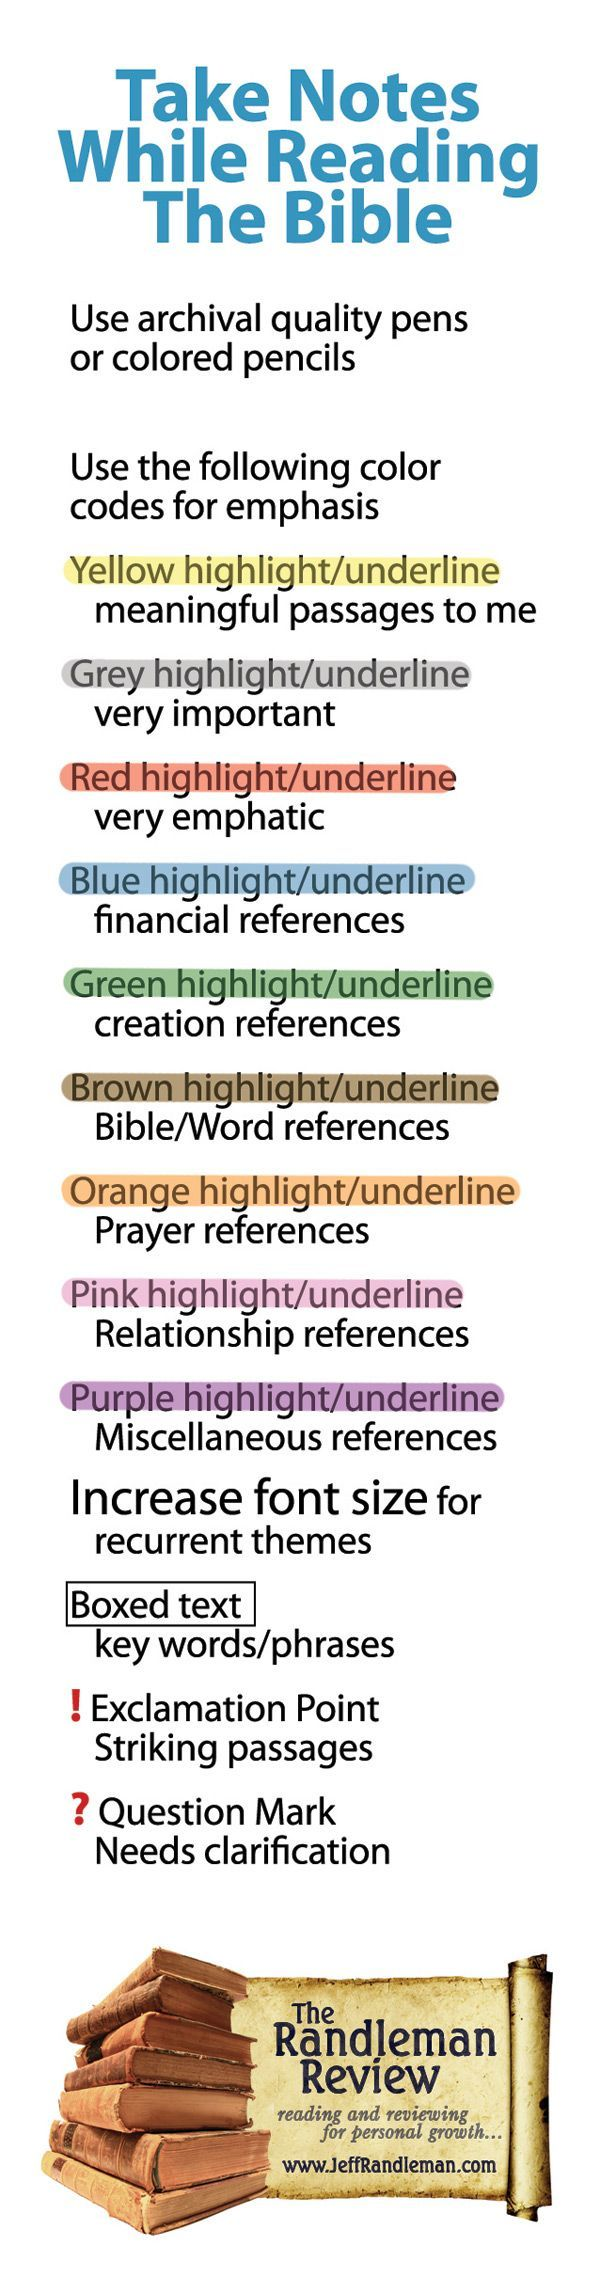 How To Take Notes While Reading The Bible -can be used for any type of notetaking.